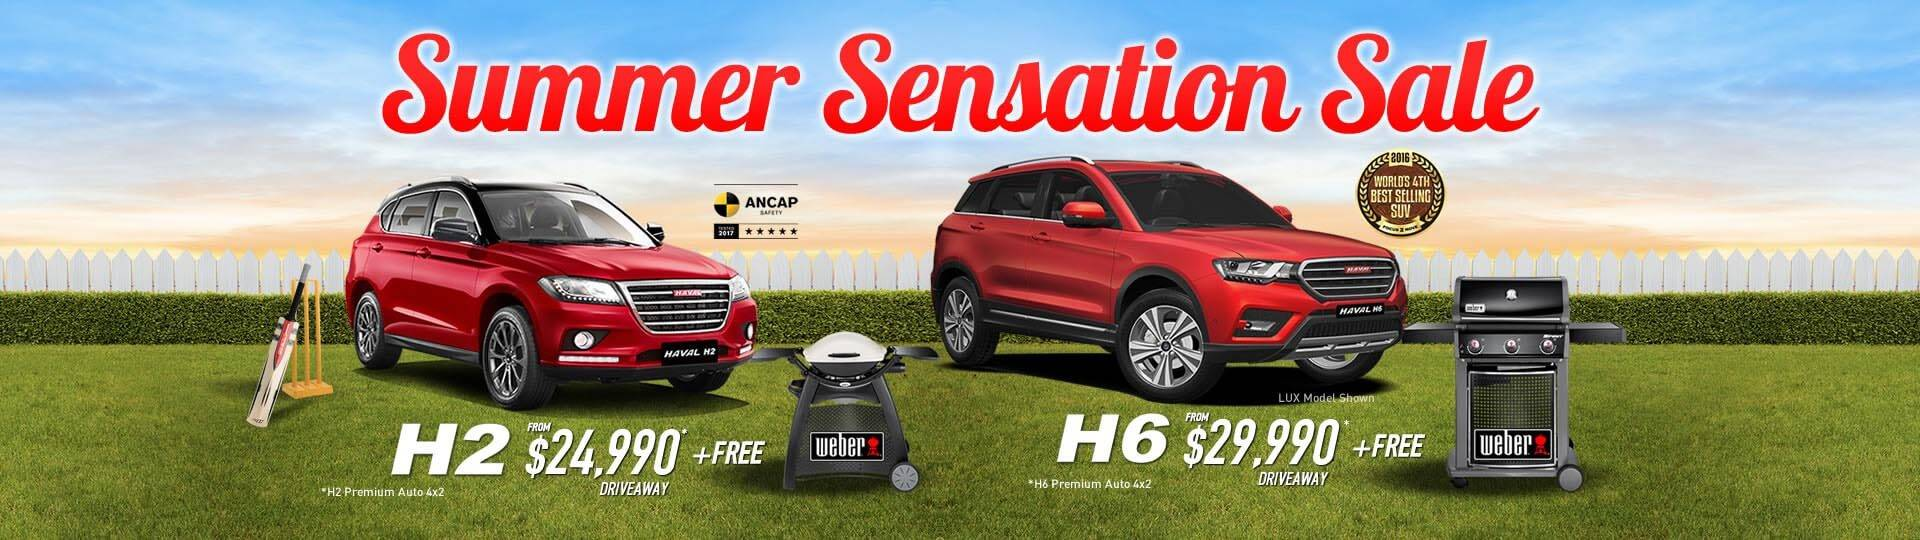 Haval_Summer_Sensation_Sale